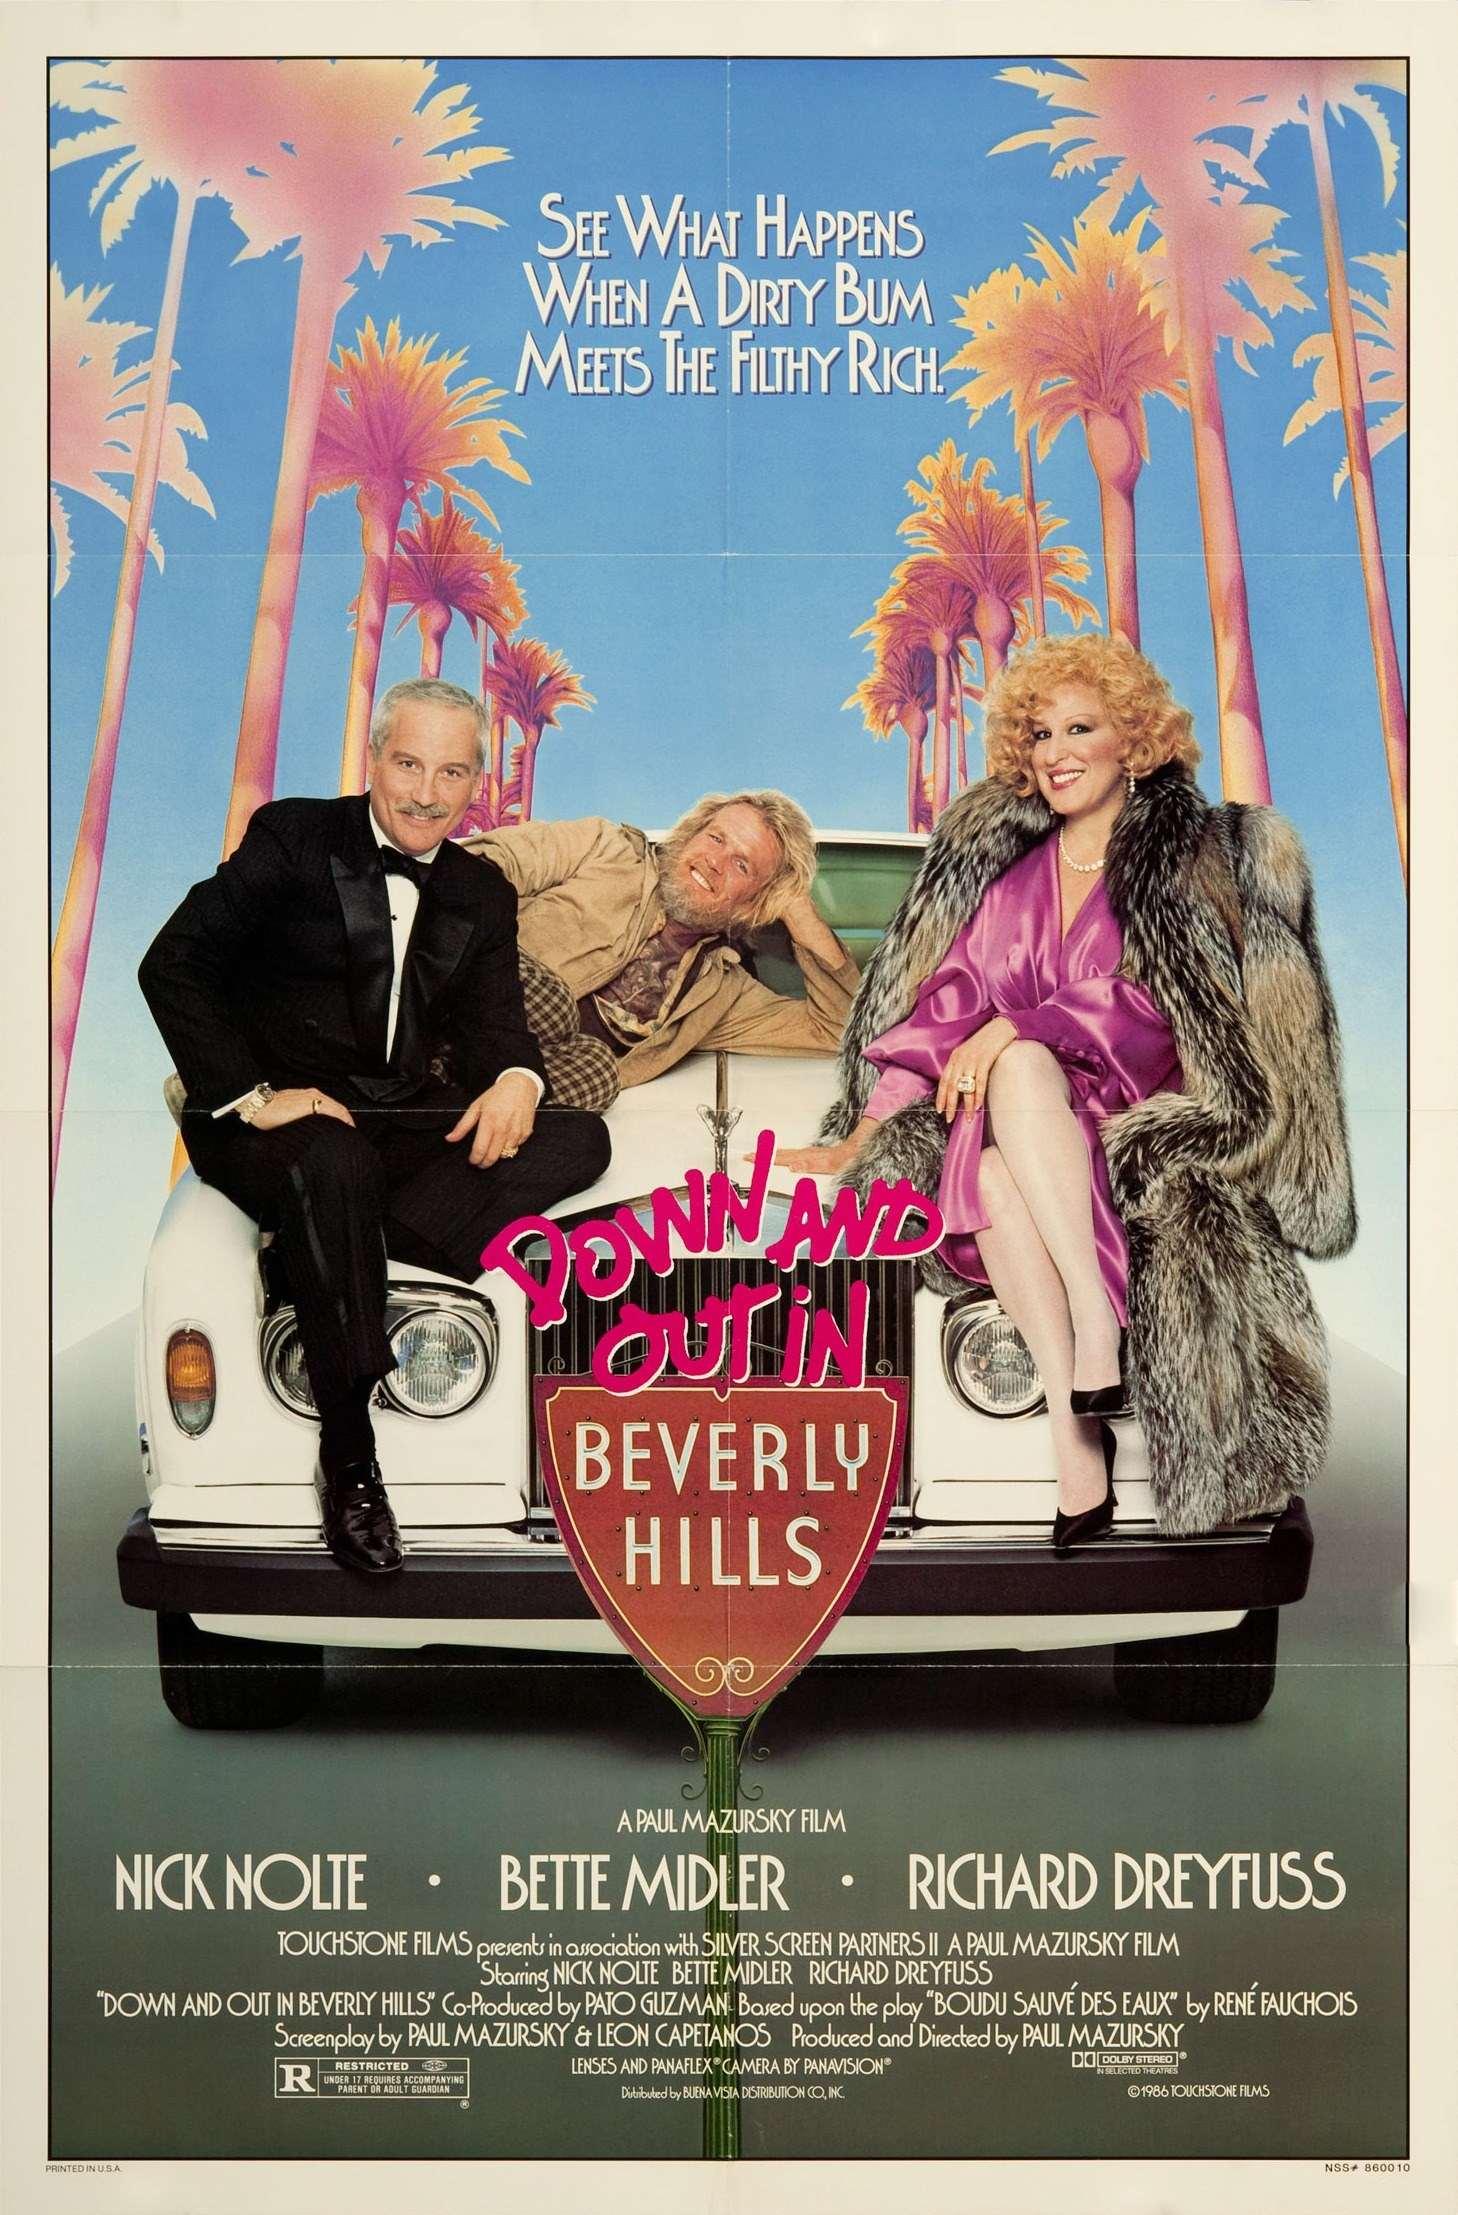 Affiche Poster clochard beverly hills down out disney touchstone